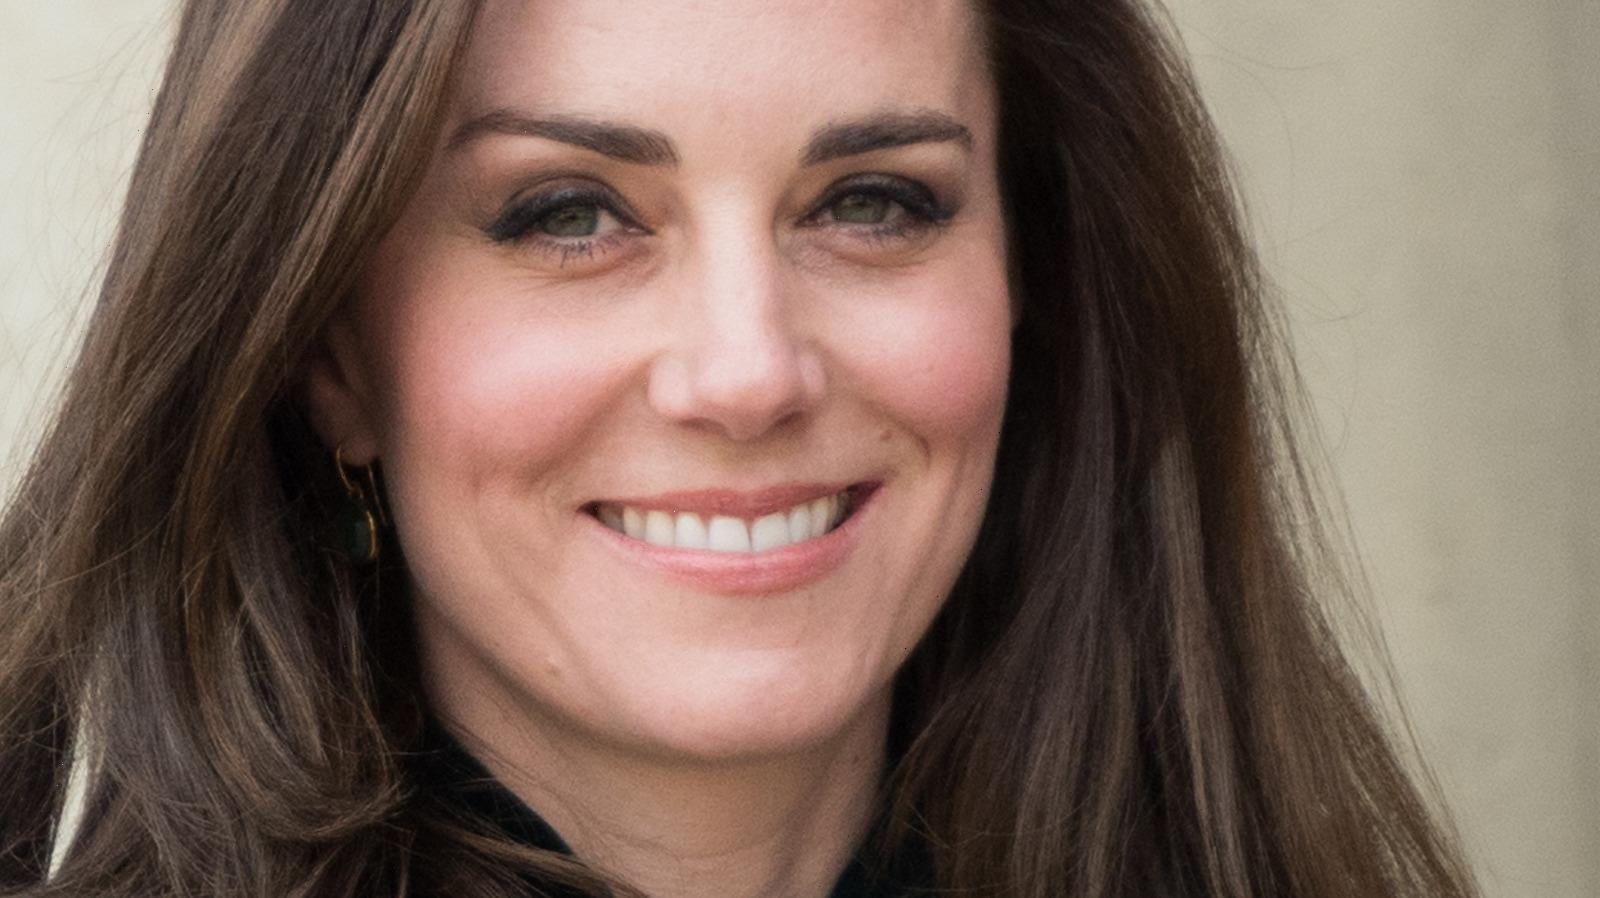 Charity CEO Reveals How Kate Middleton Really Is Behind The Scenes